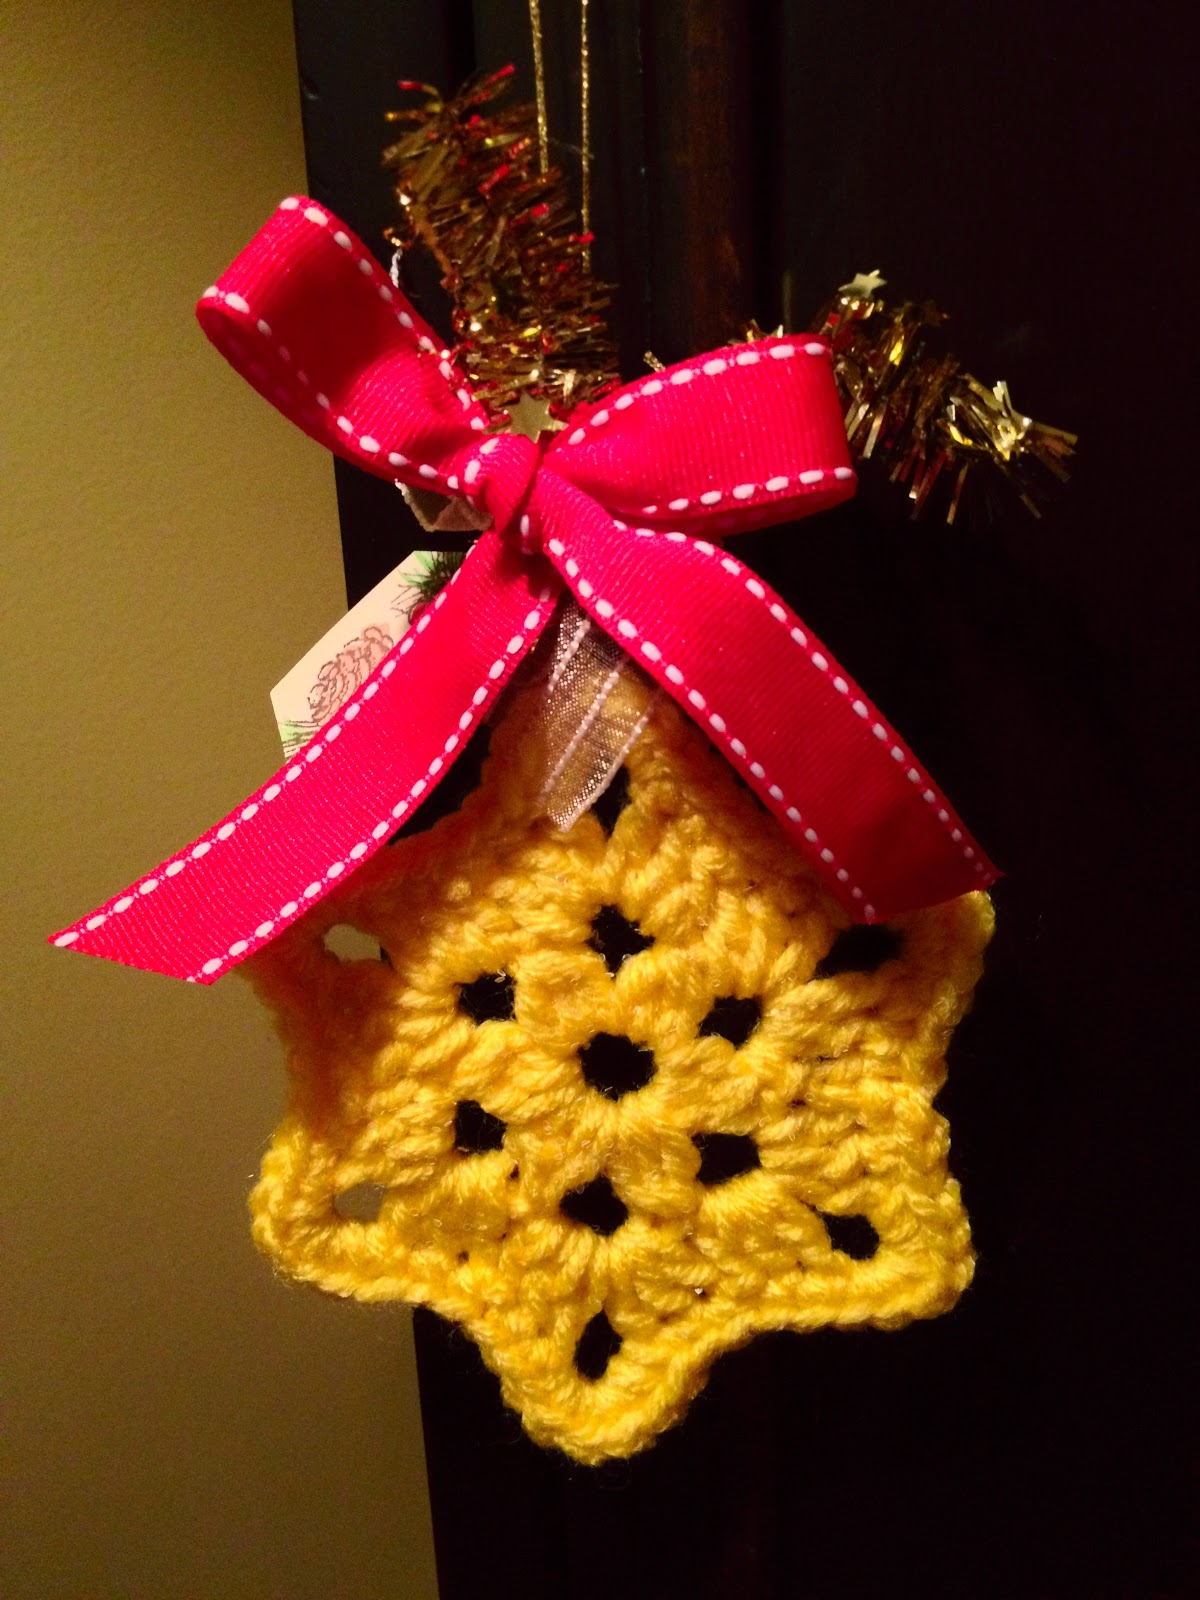 ... - My crochet and knitting ramblings.: Crochet Christmas Ornaments